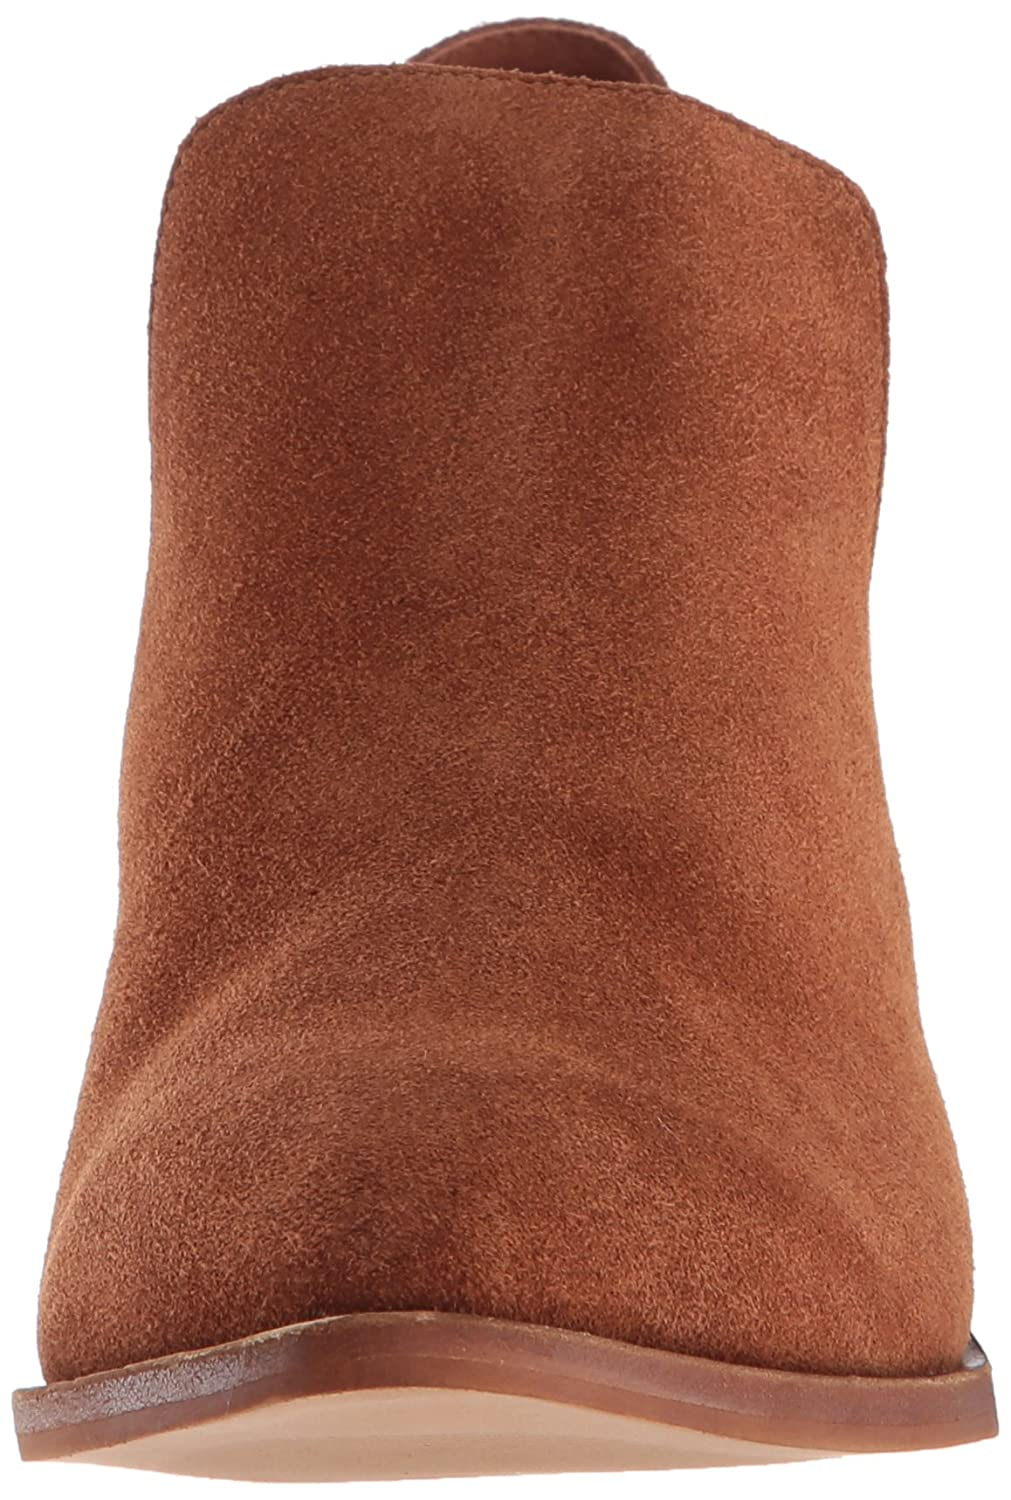 Chinese Laundry Women's Focus Ankle Bootie B07BN4CPYR 5.5 B(M) US|Rust Suede